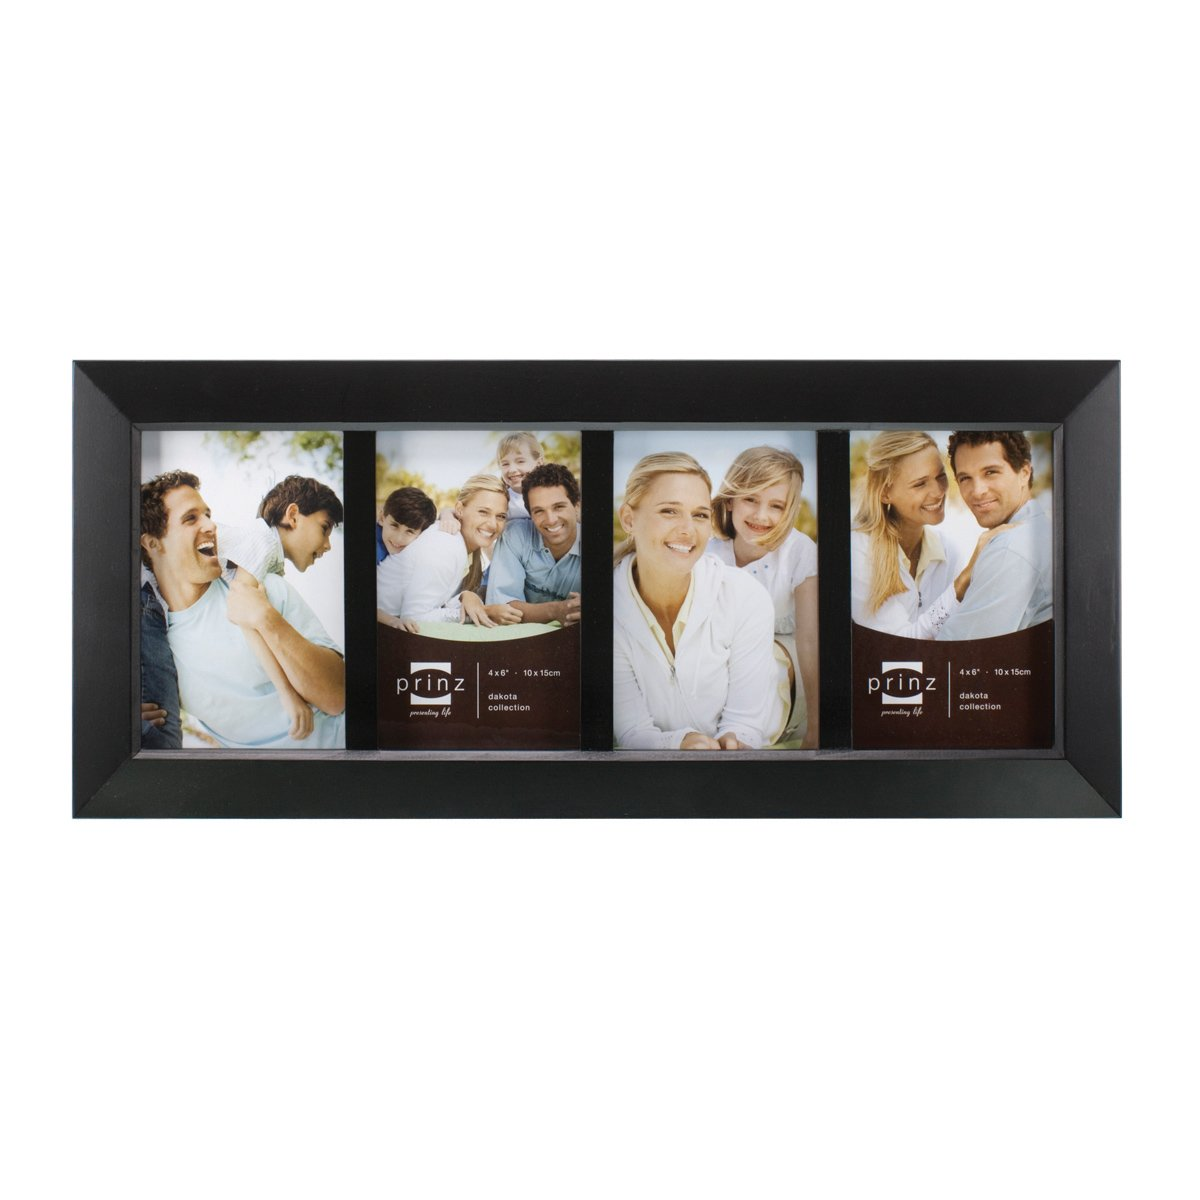 Amazon prinz 4 opening dakota black wood collage frame for 4 amazon prinz 4 opening dakota black wood collage frame for 4 inch by 6 inch photo jeuxipadfo Images